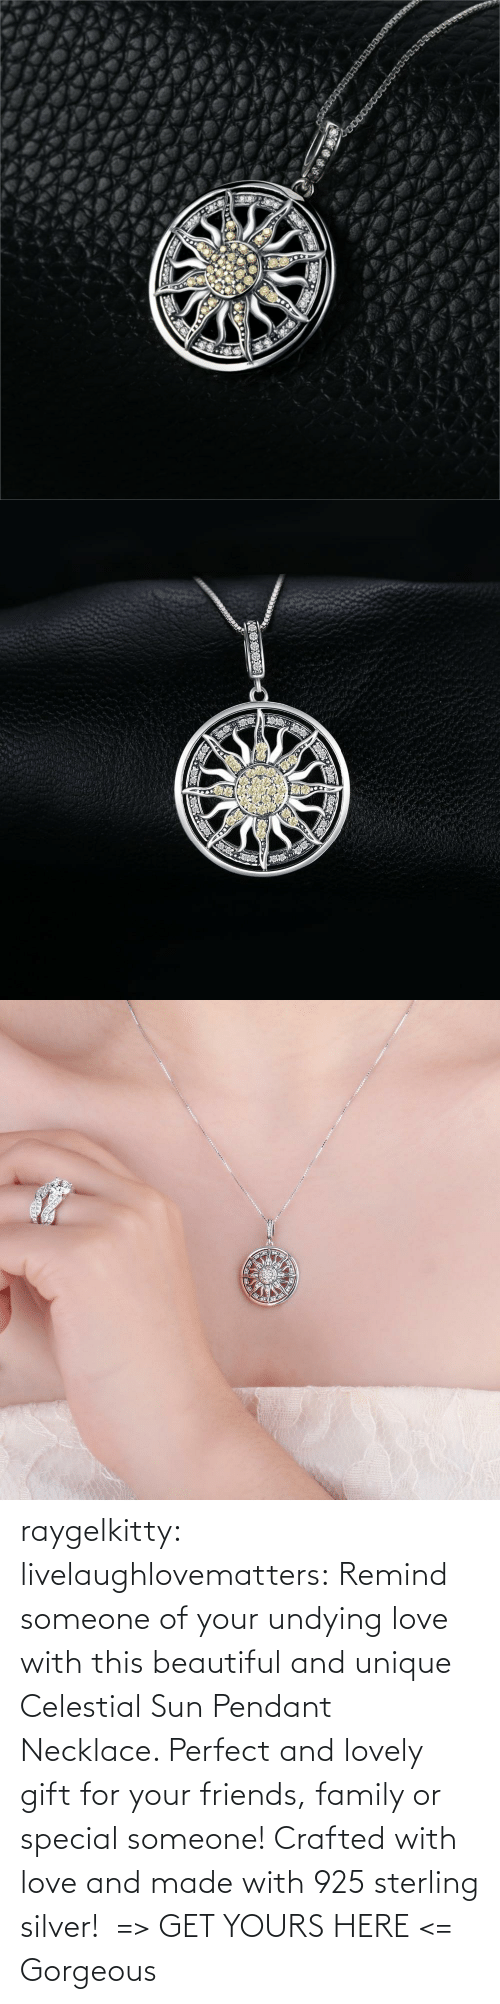 sun: raygelkitty:  livelaughlovematters: Remind someone of your undying love with this beautiful and unique Celestial Sun Pendant Necklace. Perfect and lovely gift for your friends, family or special someone! Crafted with love and made with 925 sterling silver!  => GET YOURS HERE <=    Gorgeous